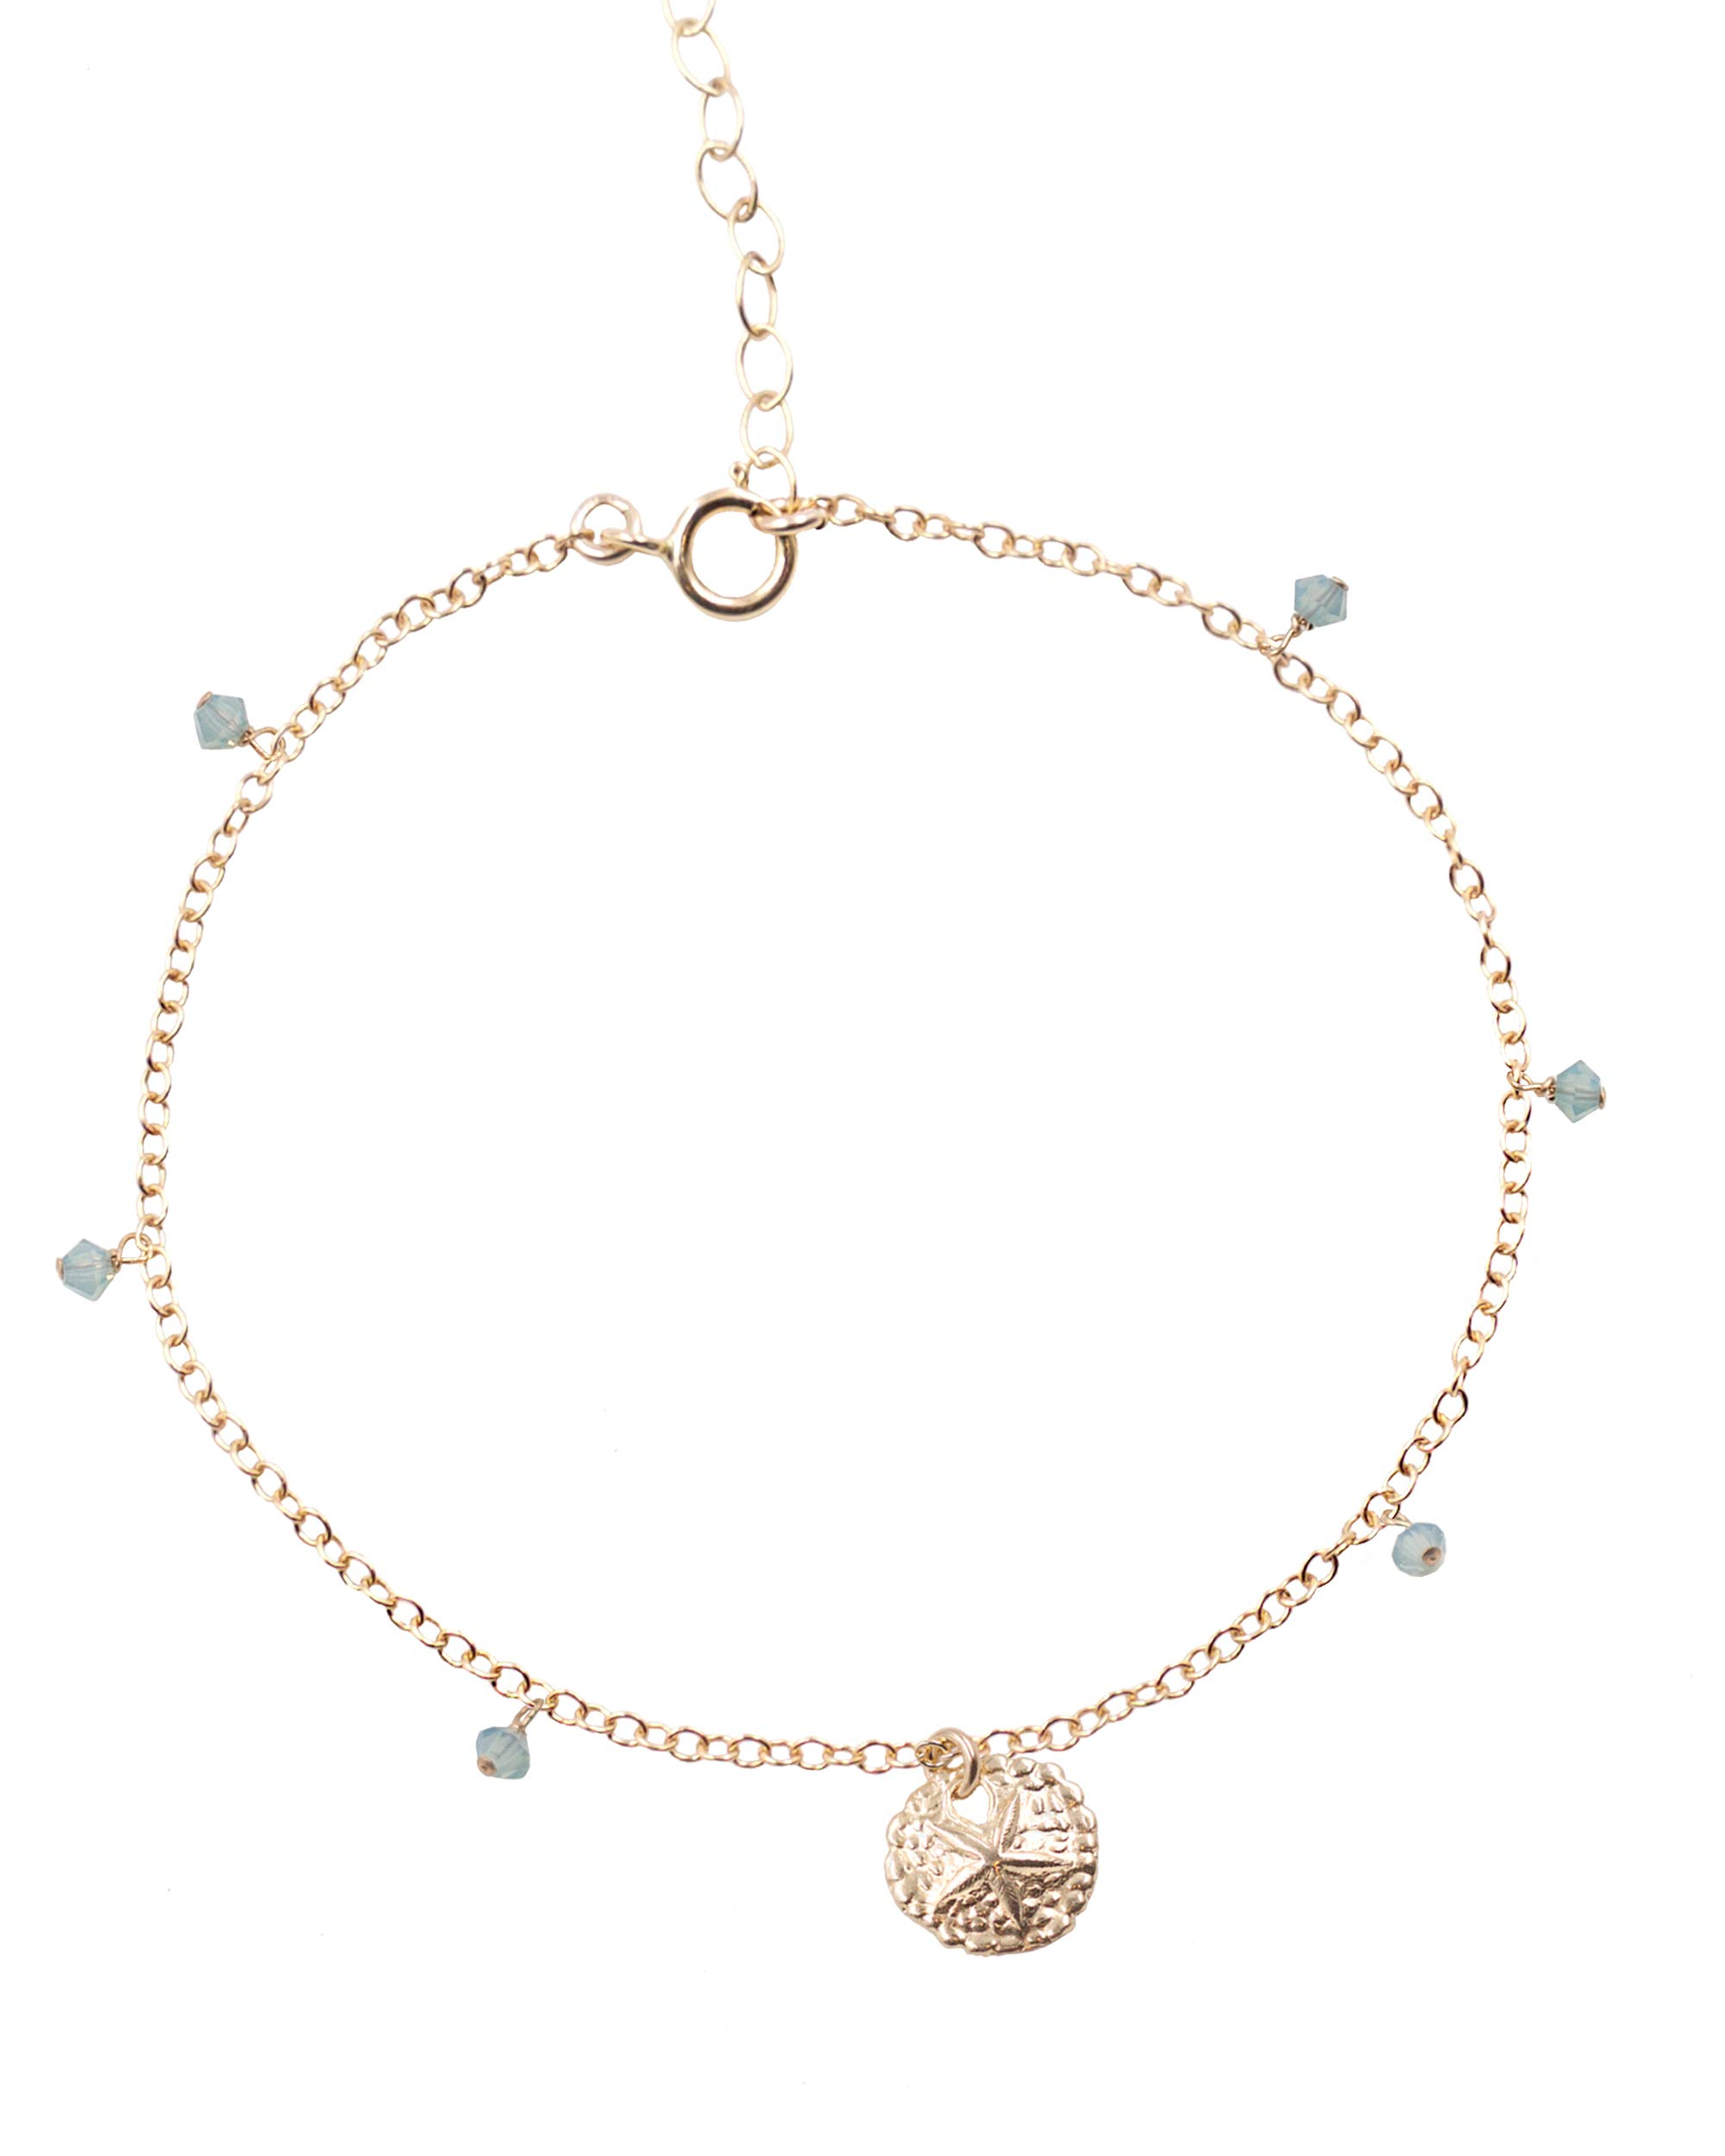 MaeMae 14k Gold Filled Sand Dollar Charm Anklet, 3mm Swarovski Crystals, Cable Chain, 8.5''+1'' Extender by MaeMae Jewelry (Image #1)